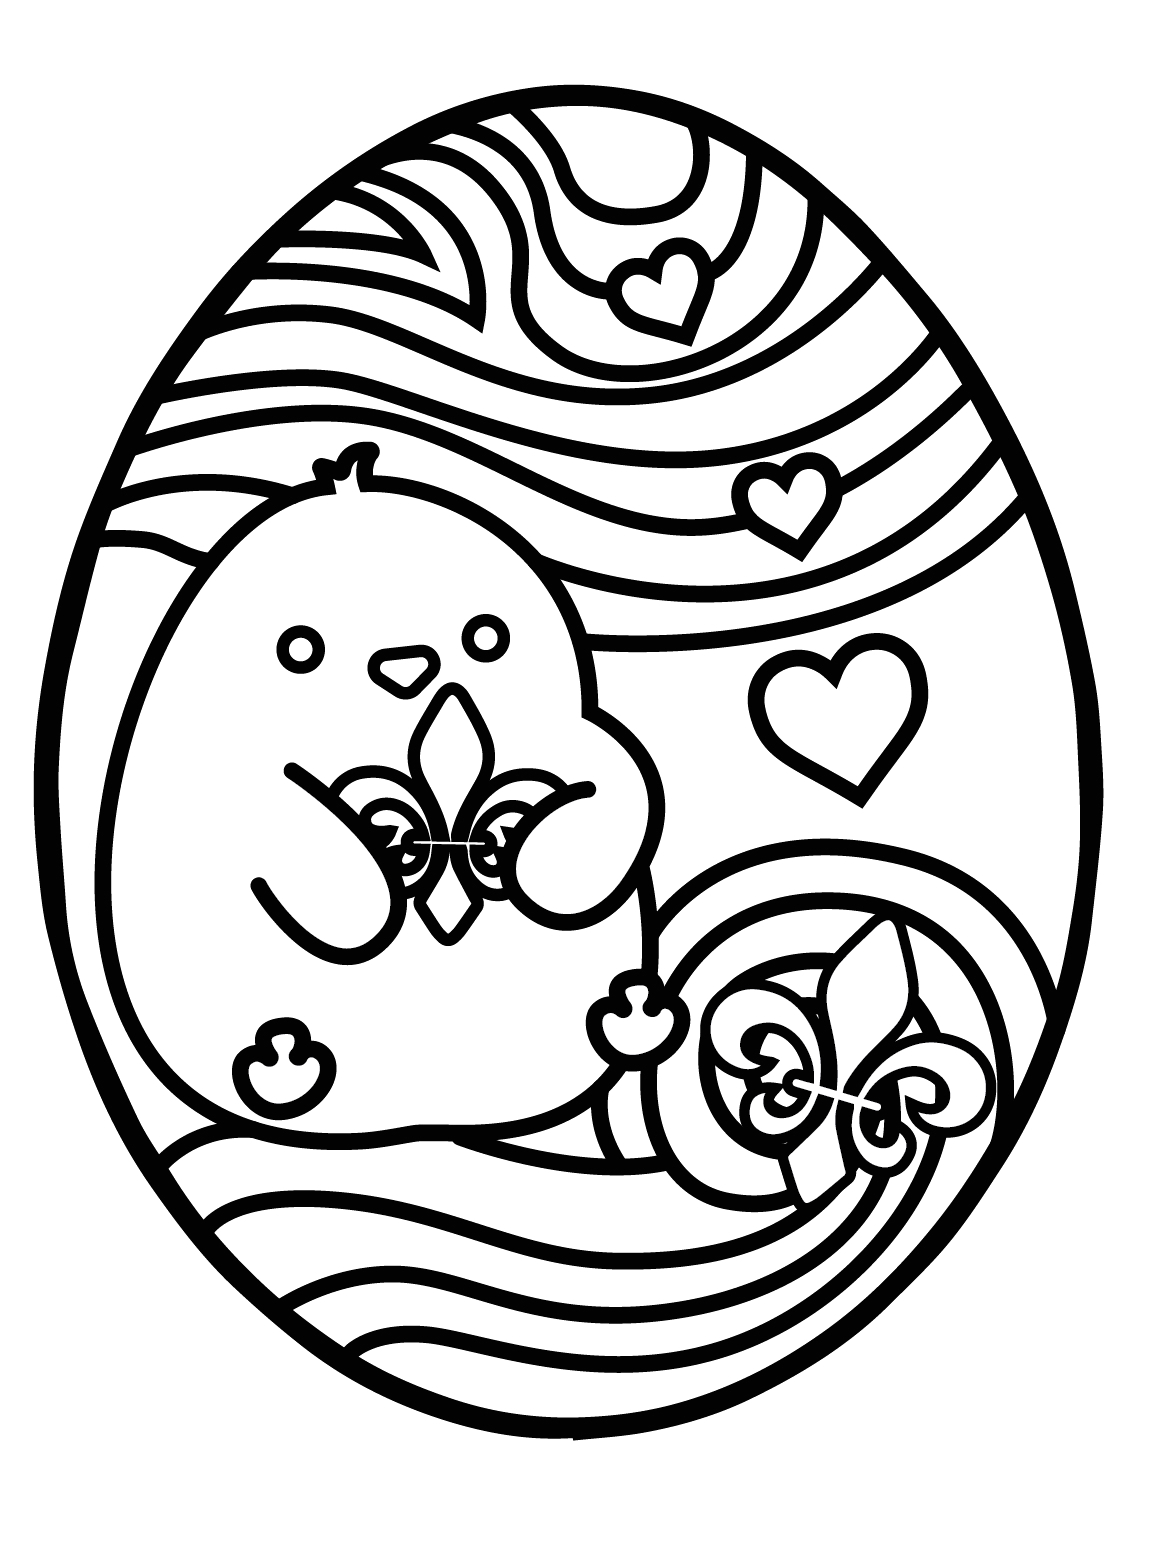 ready for an easter egg art hunt these printable easter egg coloring sheets